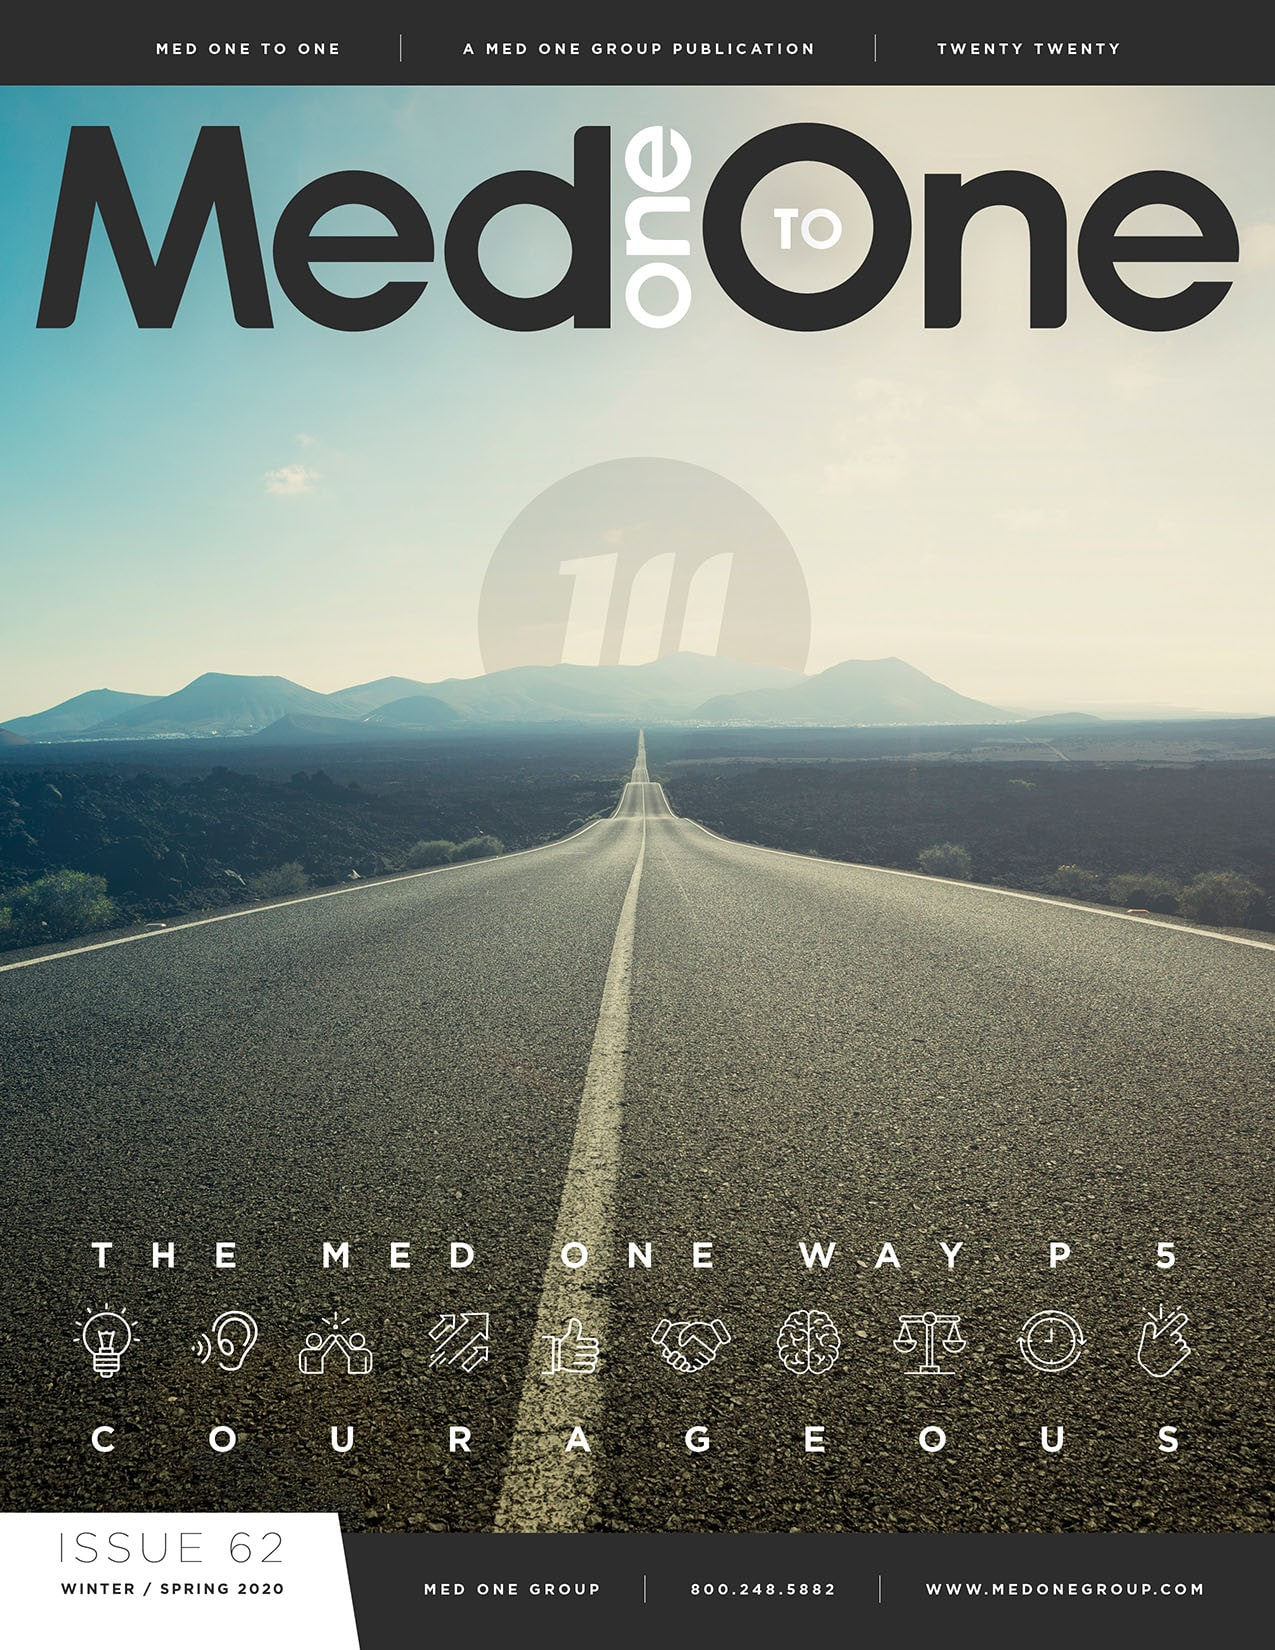 Med One To One Number 62 Cover